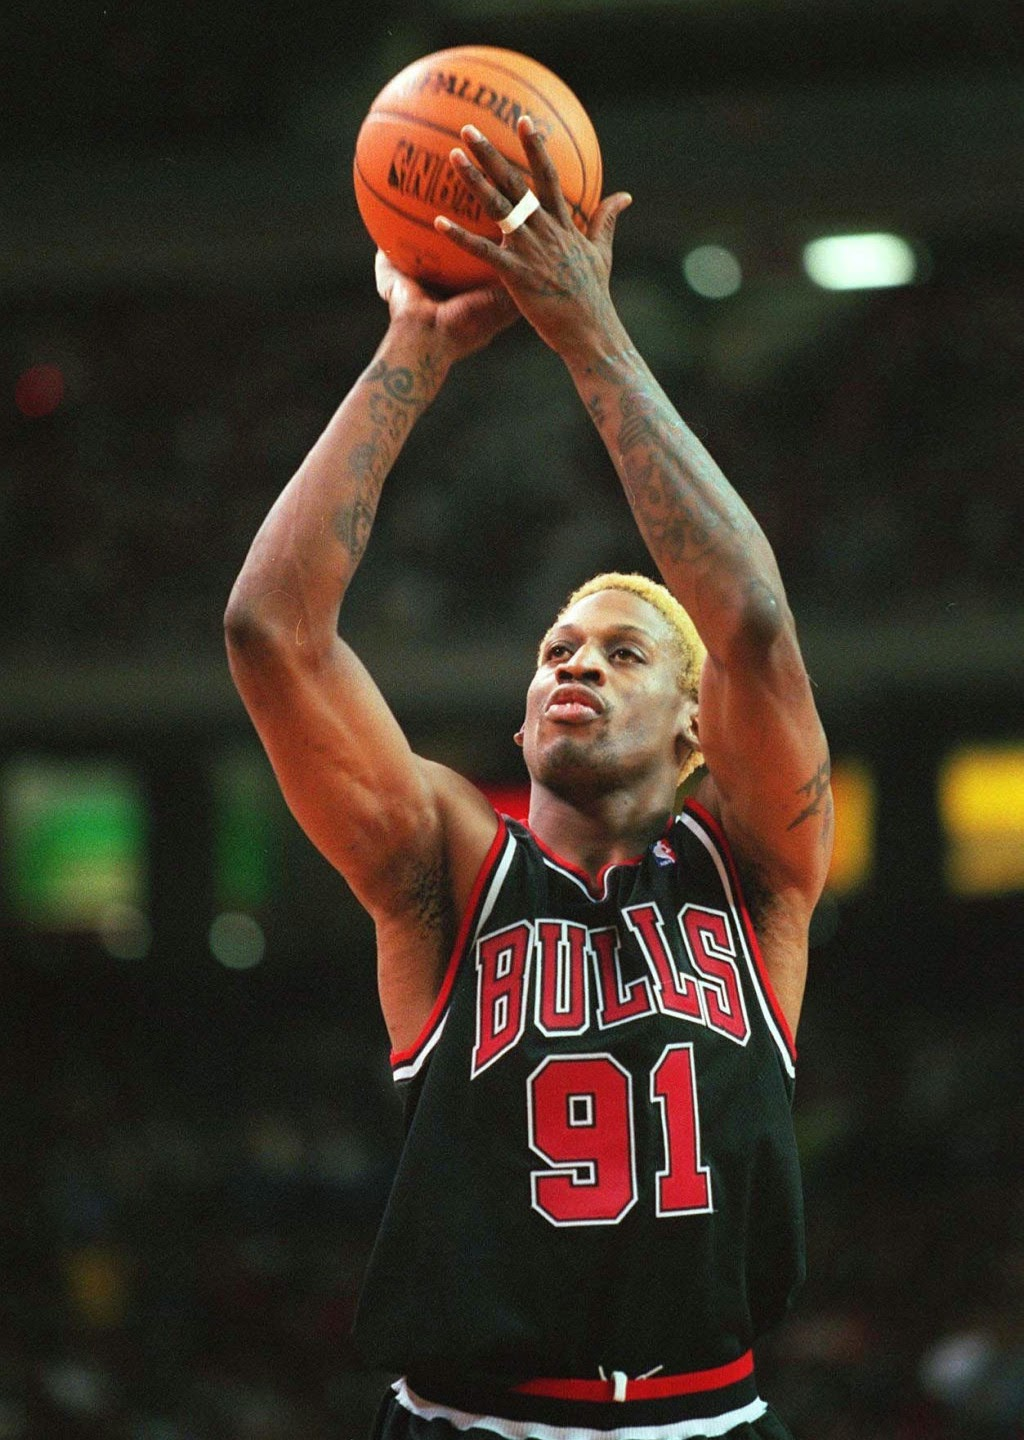 dennis rodman Born dennis keith rodman on may 13, 1961, in trenton, nj education: attended cooke county junior college, 1982-83, and southeastern oklahoma state university, 1983-86.